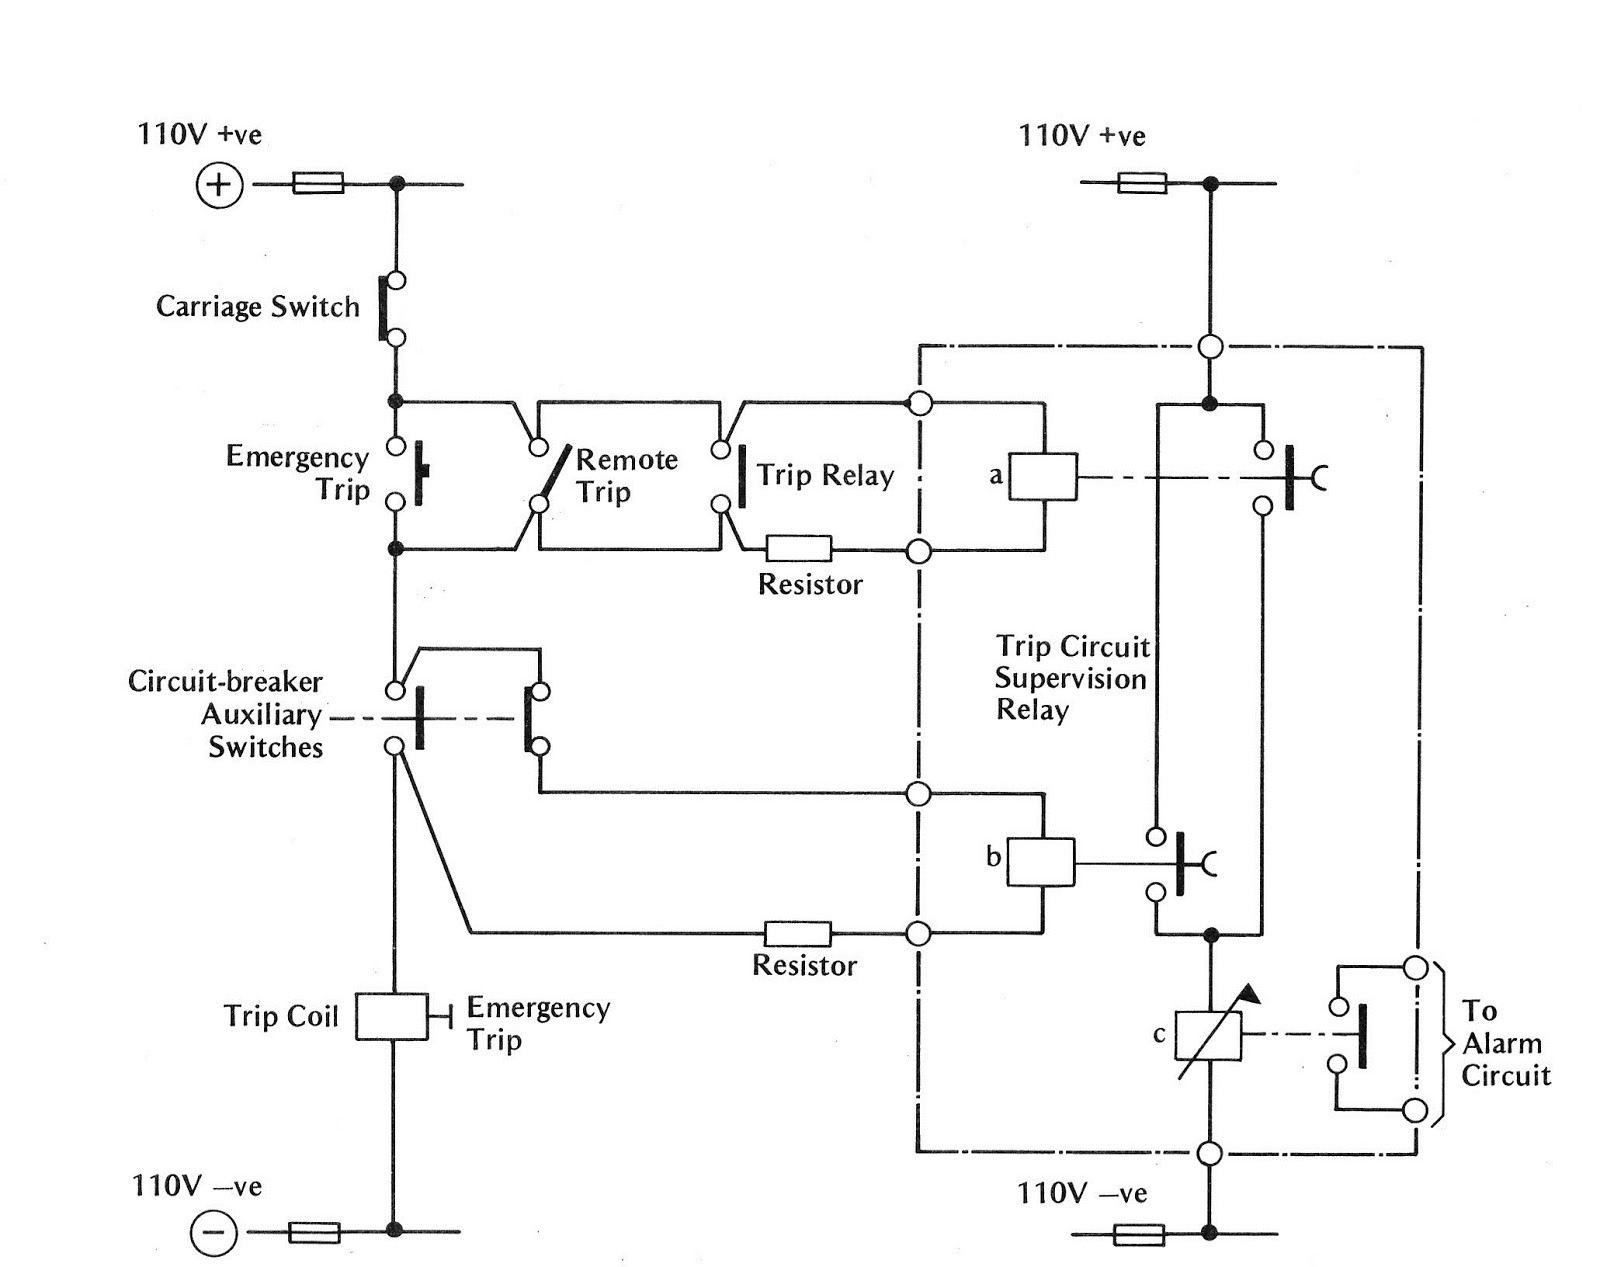 hight resolution of 3 pole circuit breaker wiring diagram 3 pole circuit breaker wiring diagram 2018 relay wiring